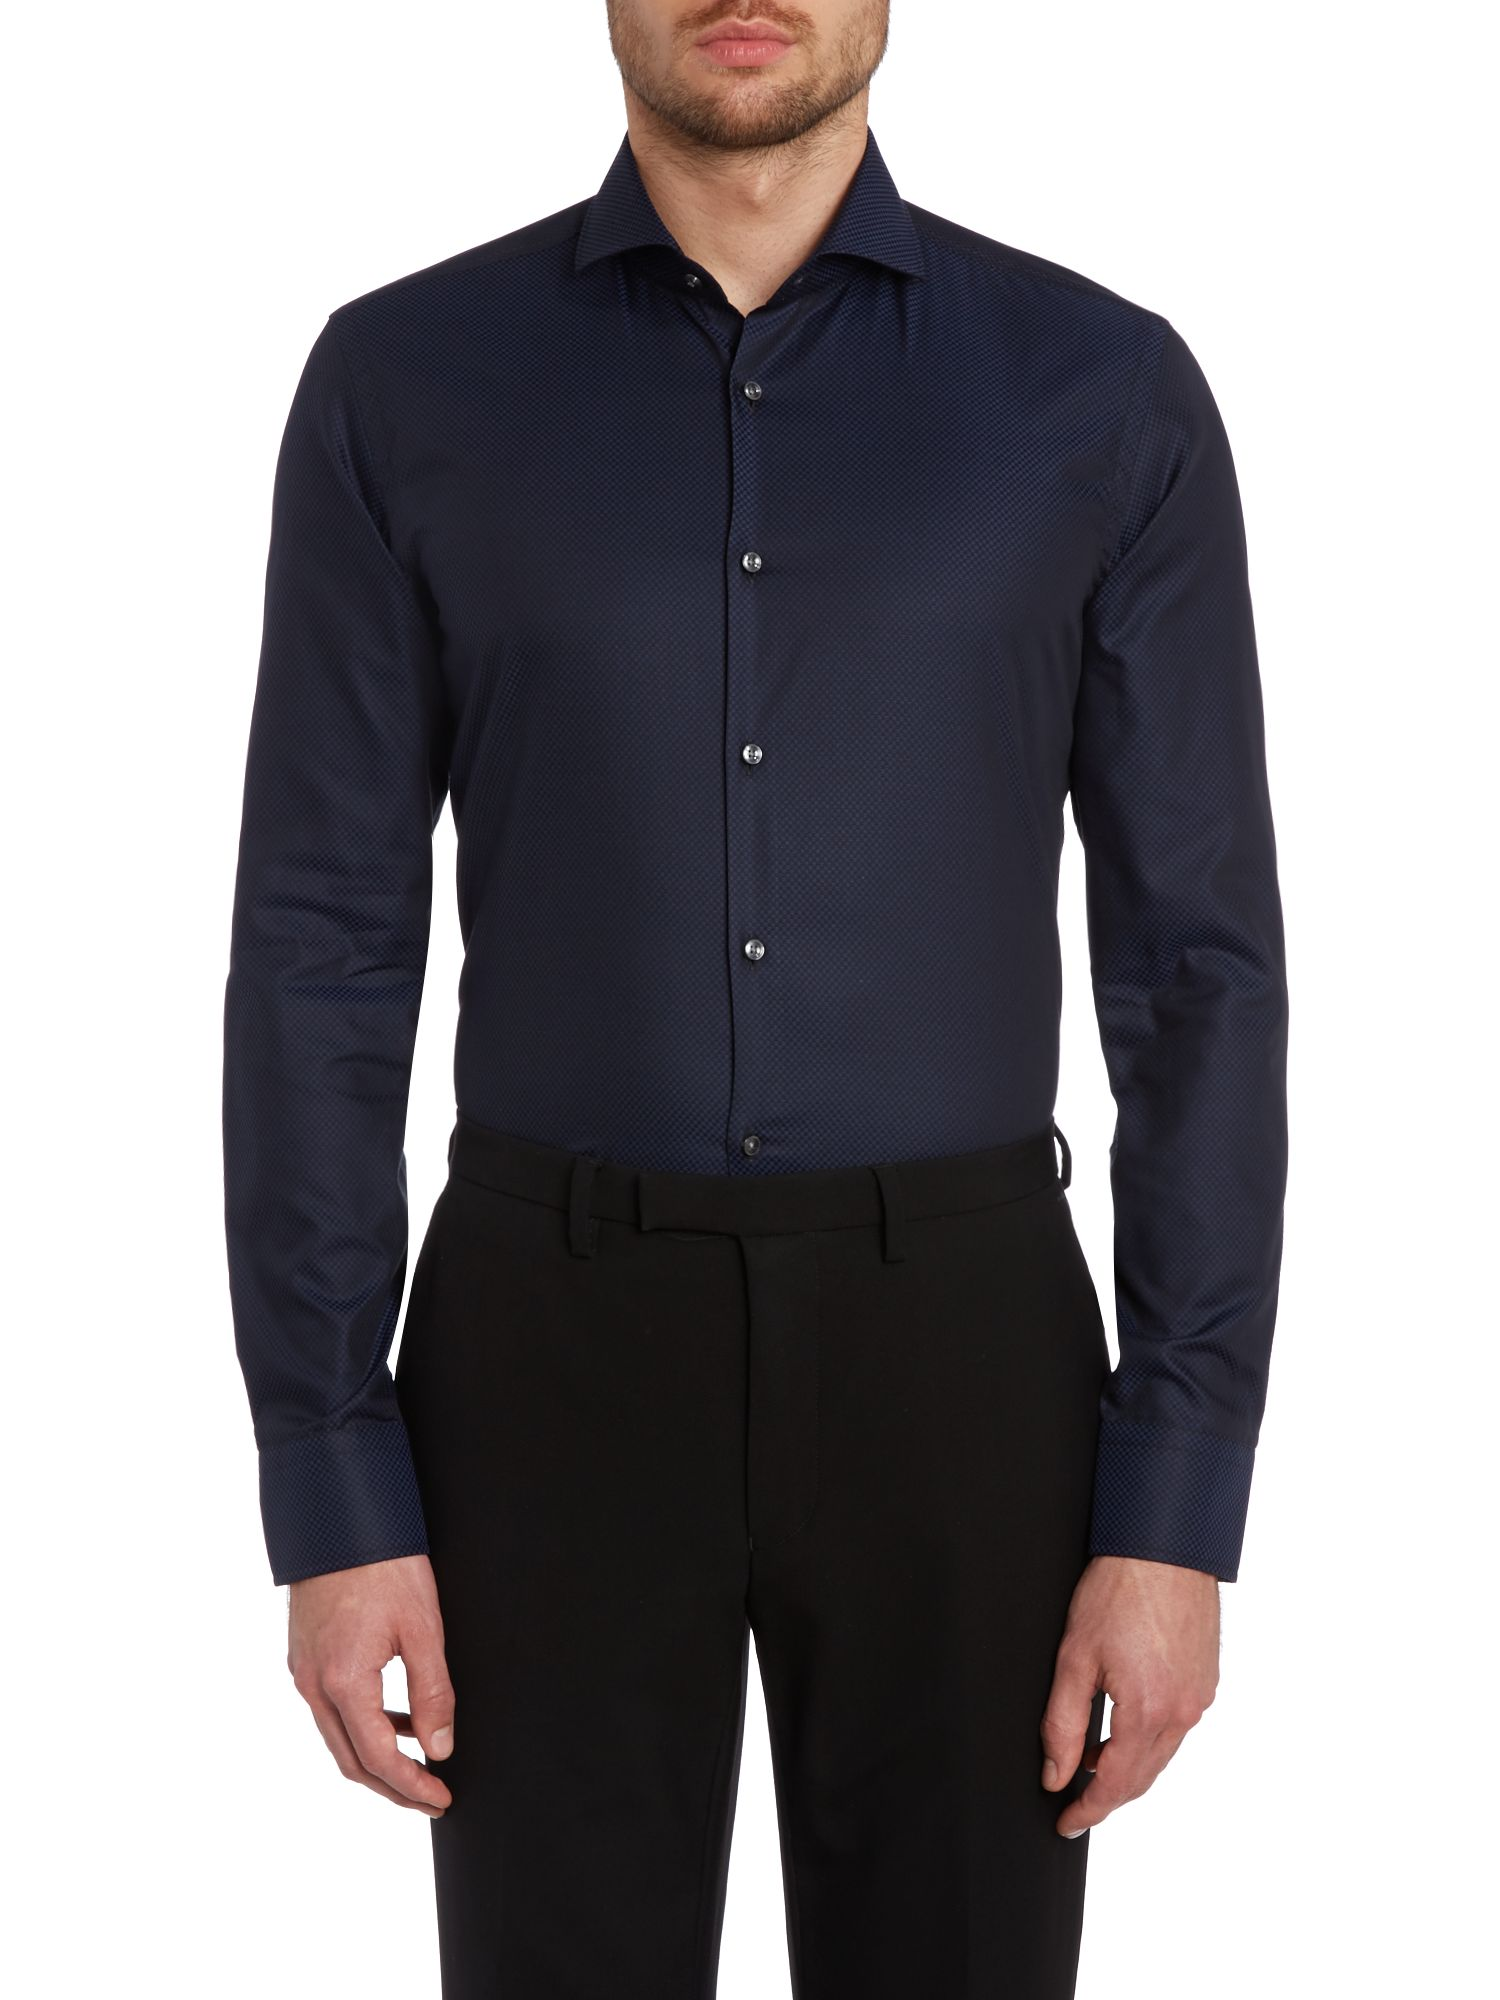 Jason slim fit tonal square shirt